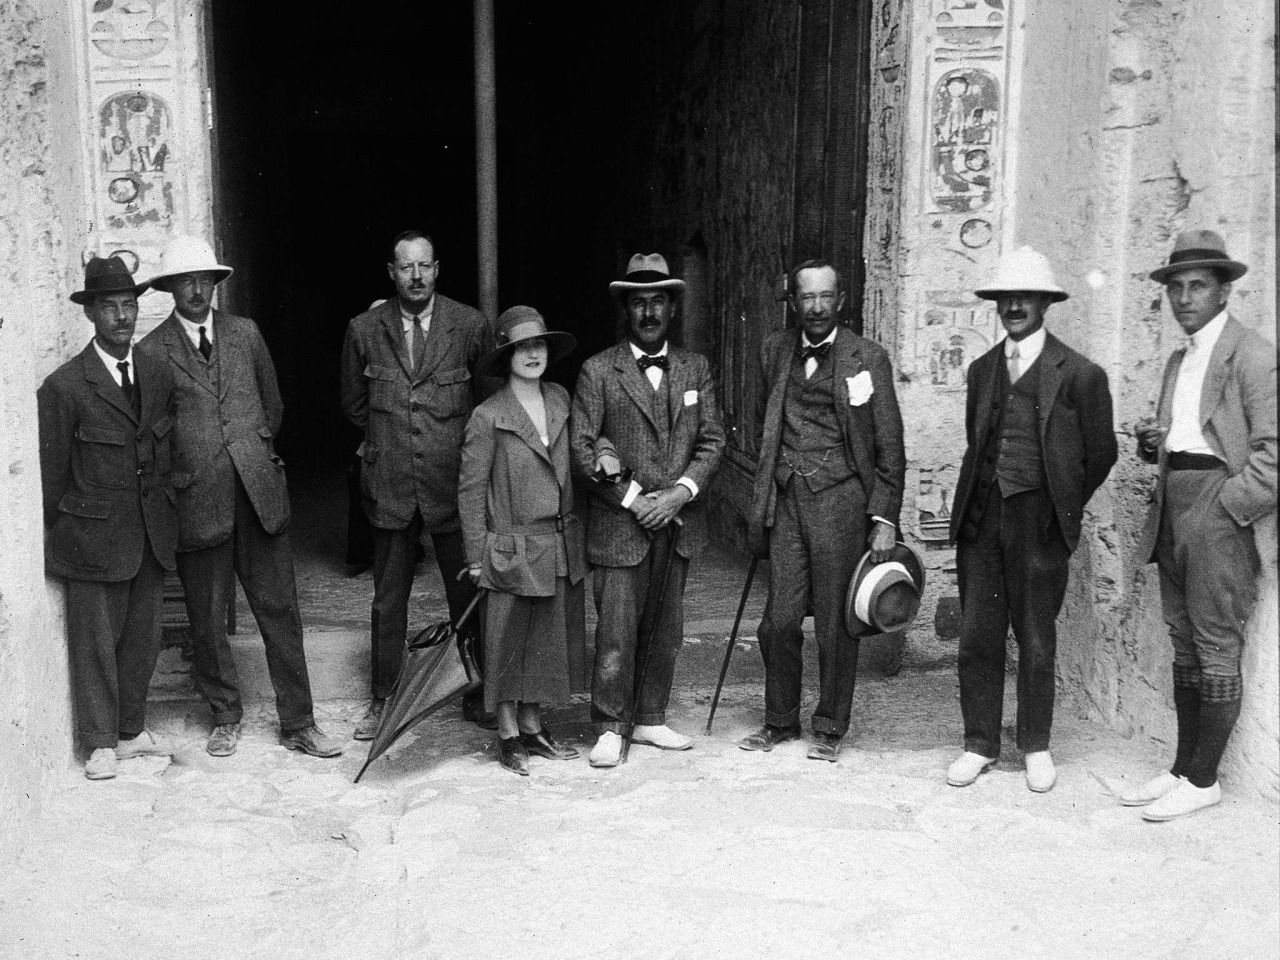 The Curse Of King Tuts Tomb Torrent: November 4, 1922: Entrance To King Tut's Tomb Discovered